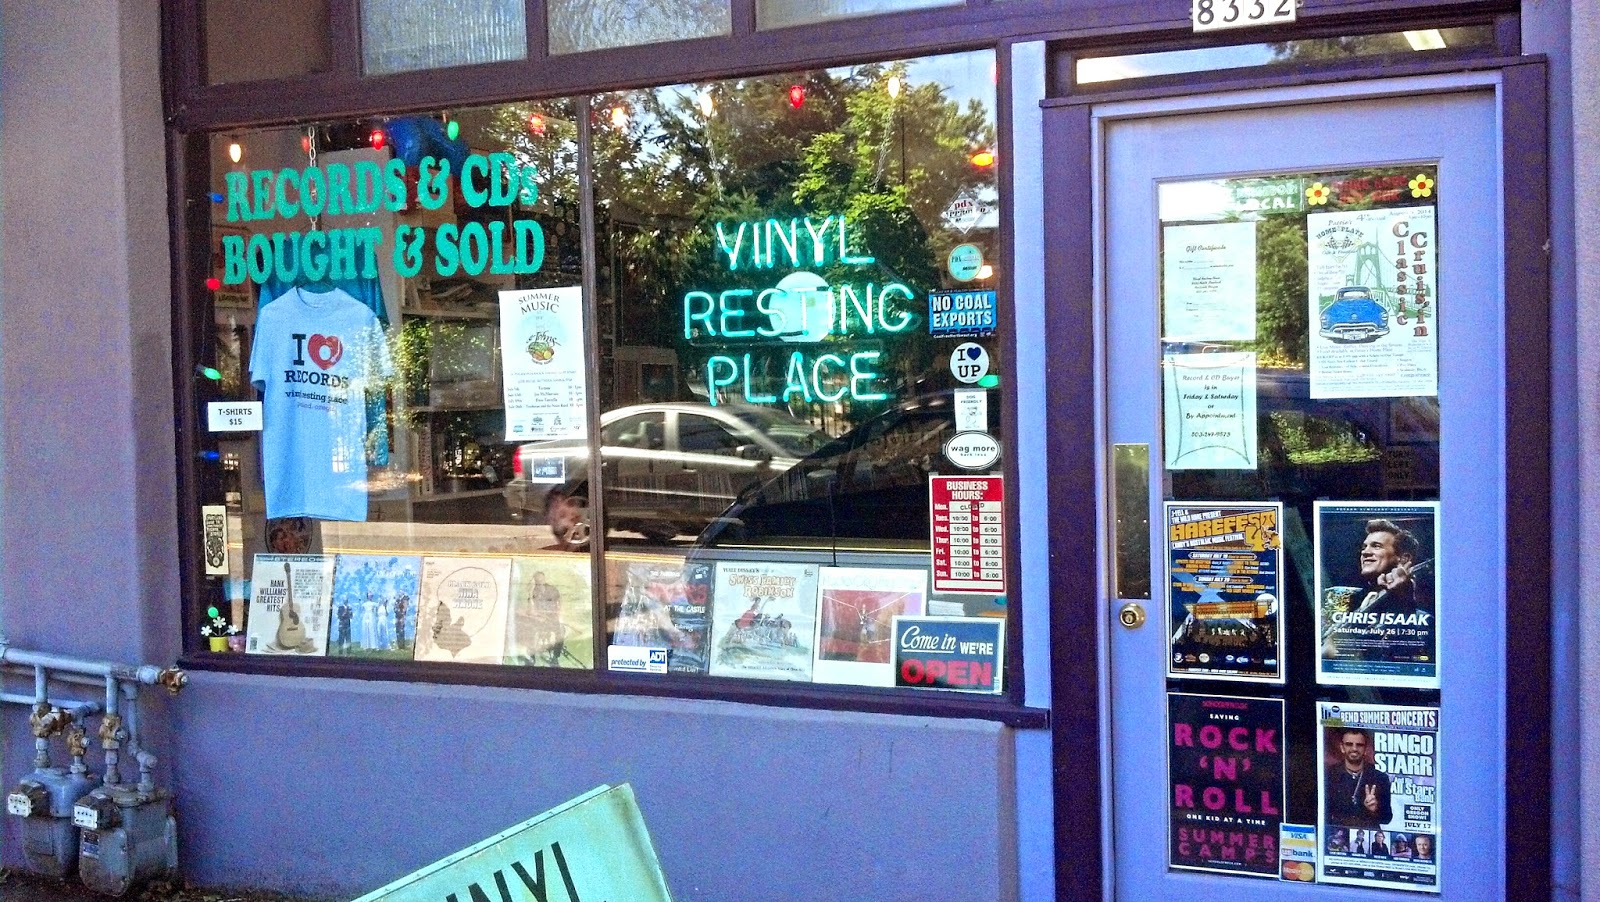 Vinyl Resting Place Record Store Portland Oregon Store Front